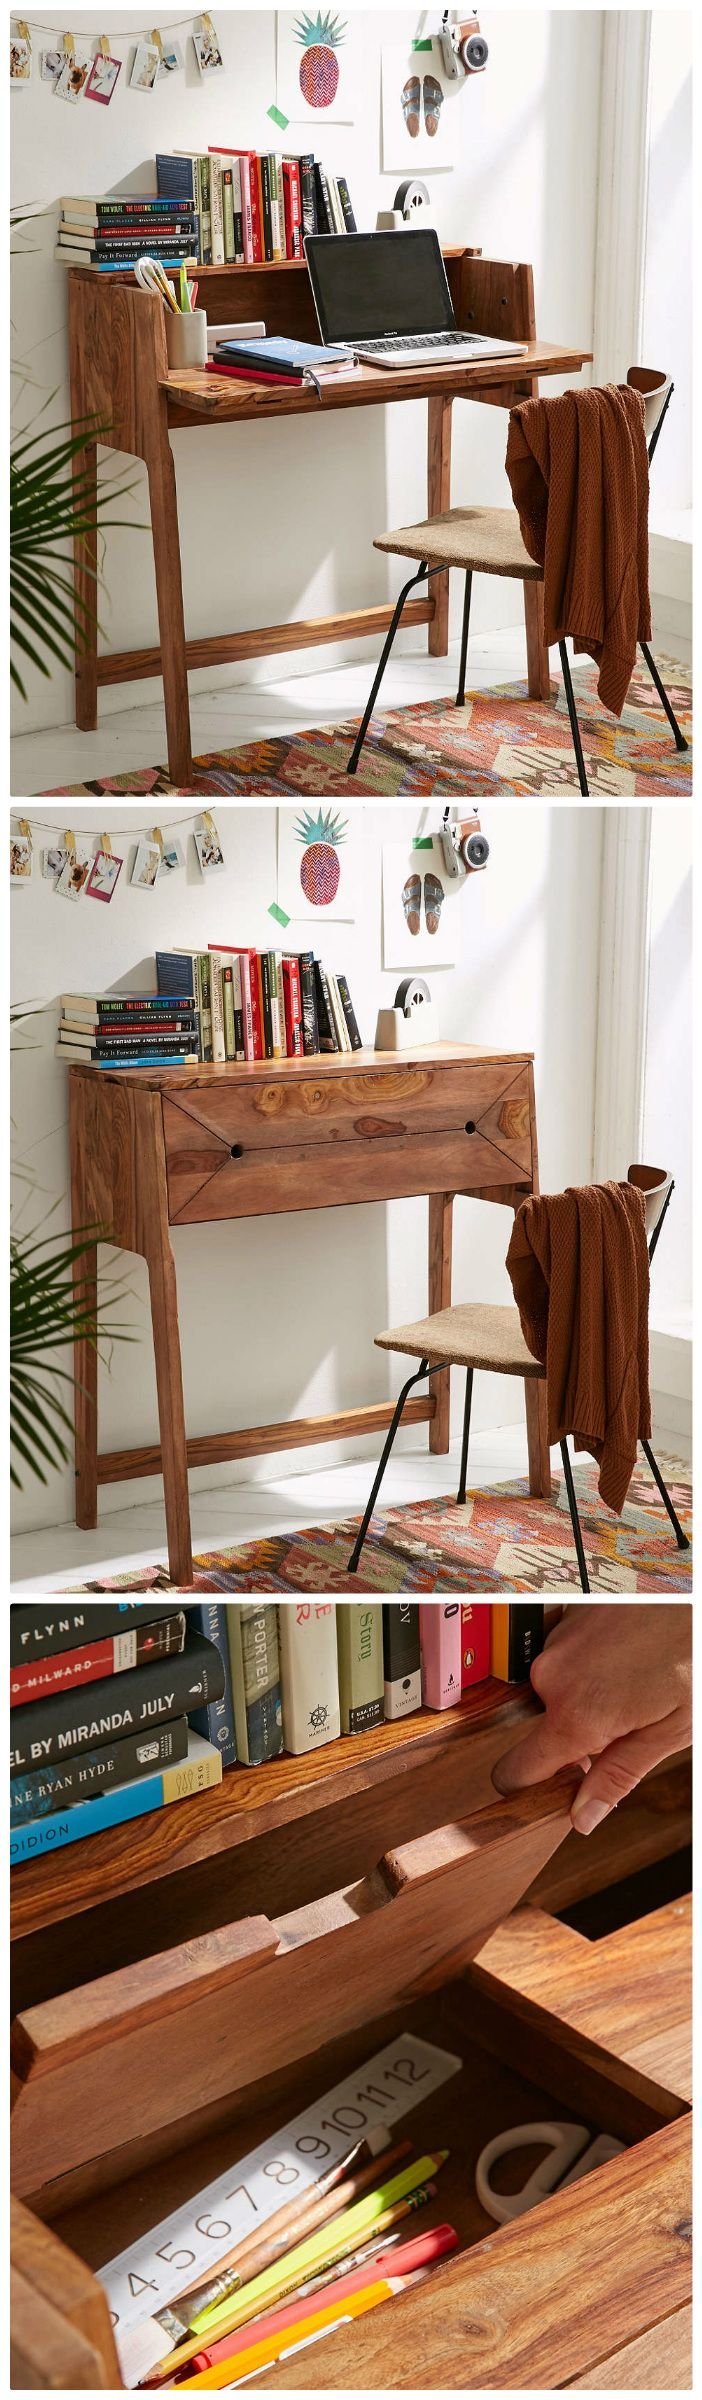 Attirant Ten Space Saving Desks That Work Great In Small Living Spaces